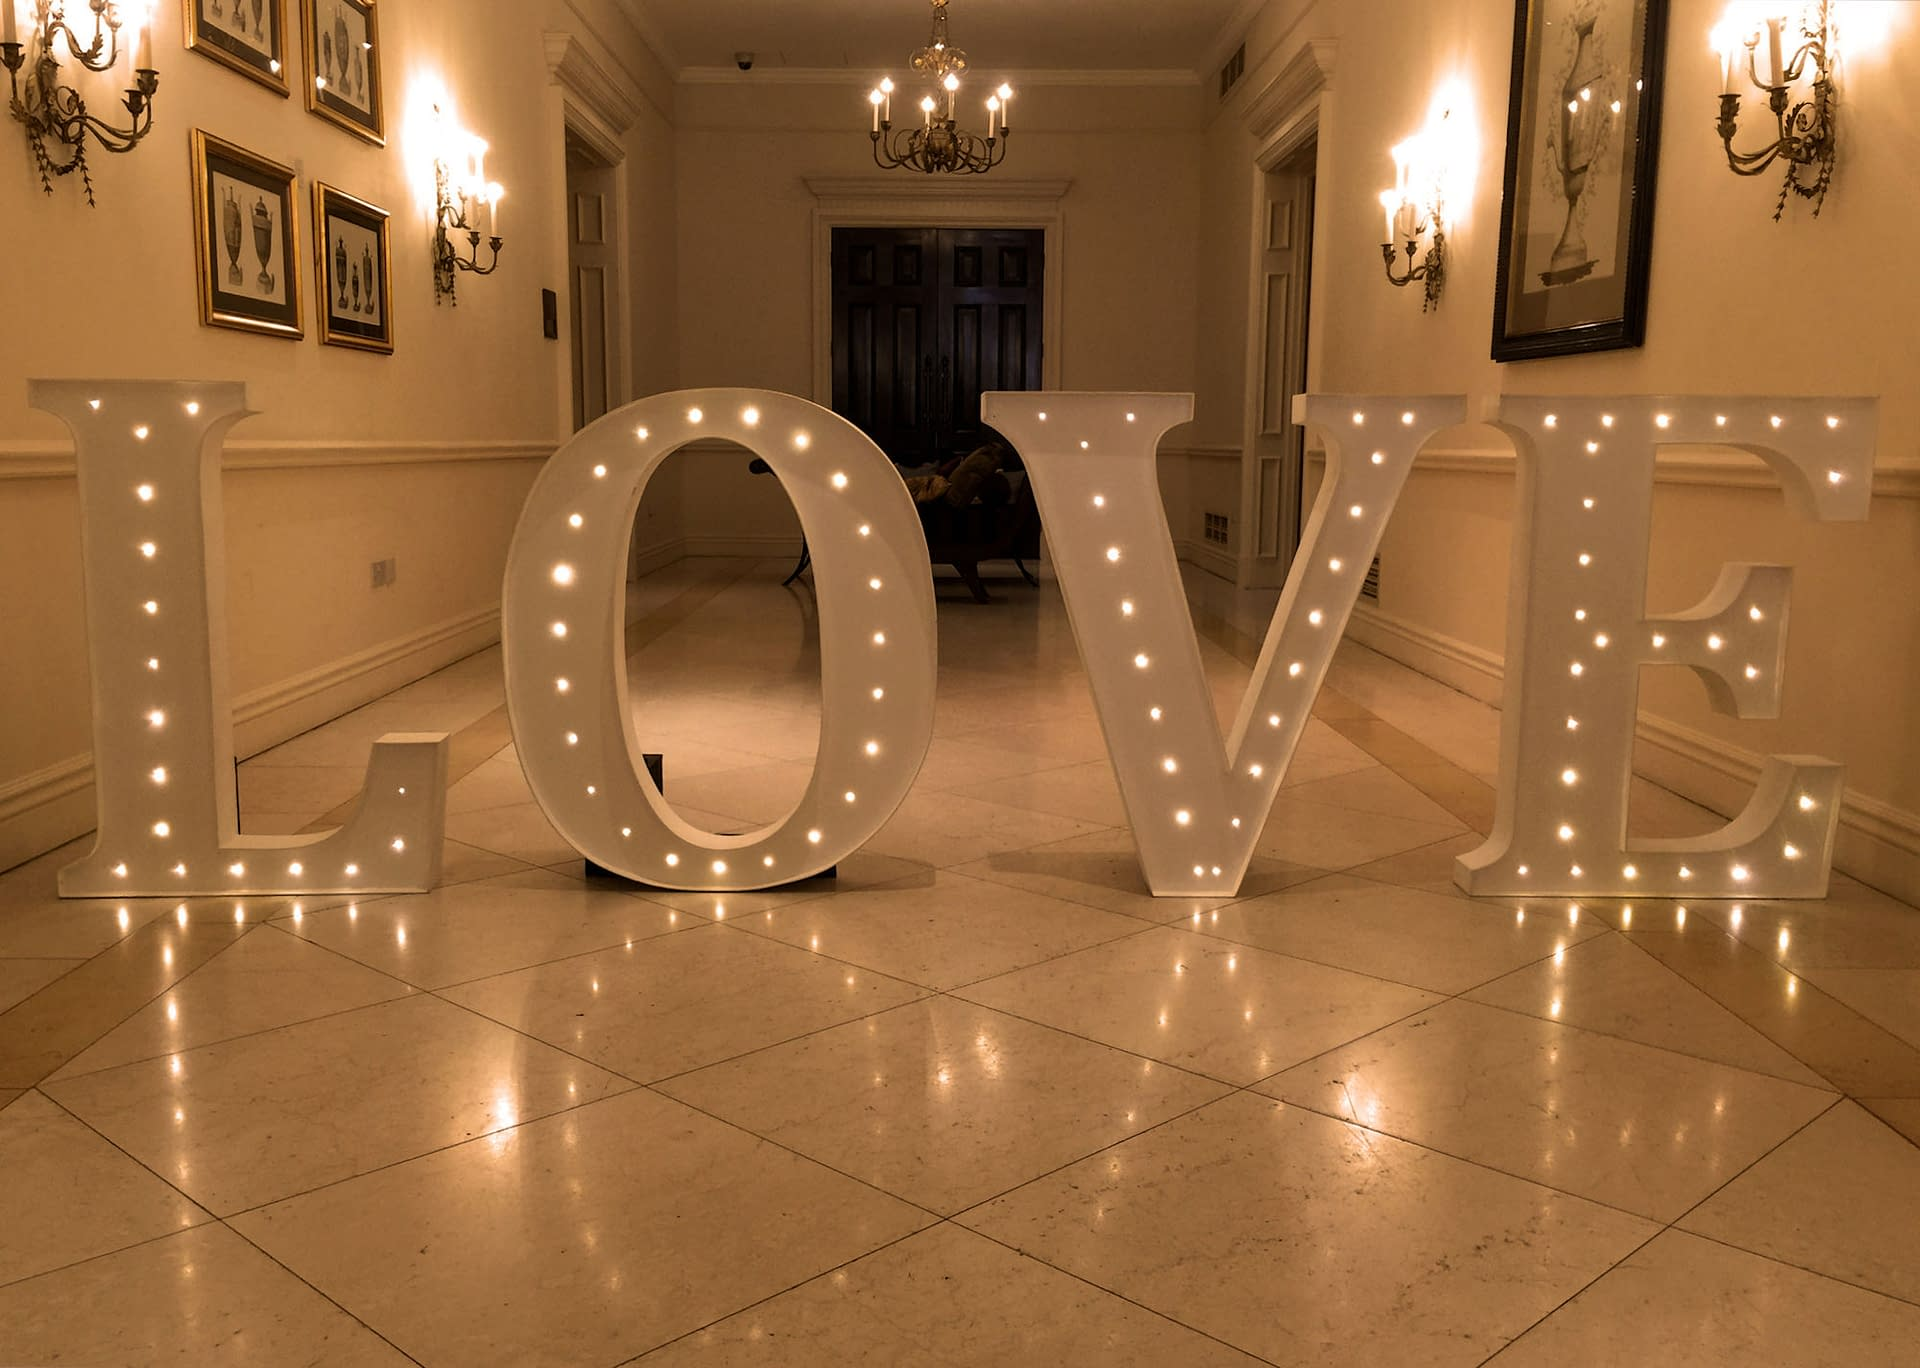 Large illuminated LOVE letters at Four Seasons Hotel in Hook, UK wedding venue